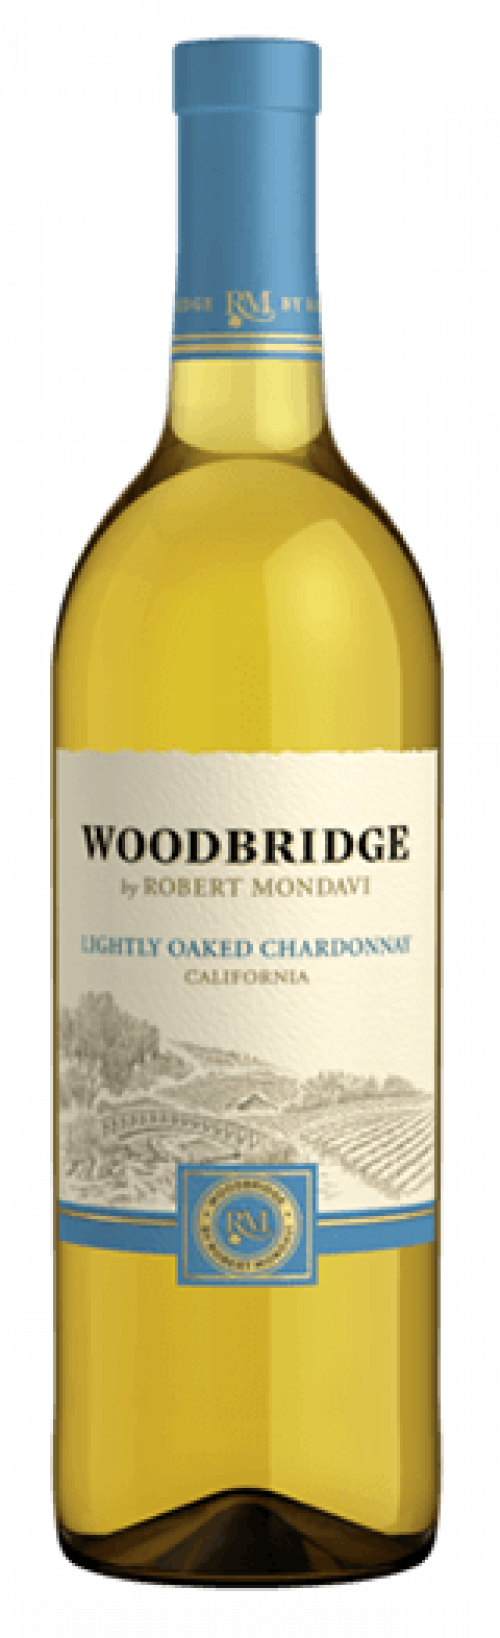 Woodbridge Lightly Oaked Chardonnay 750ml NV